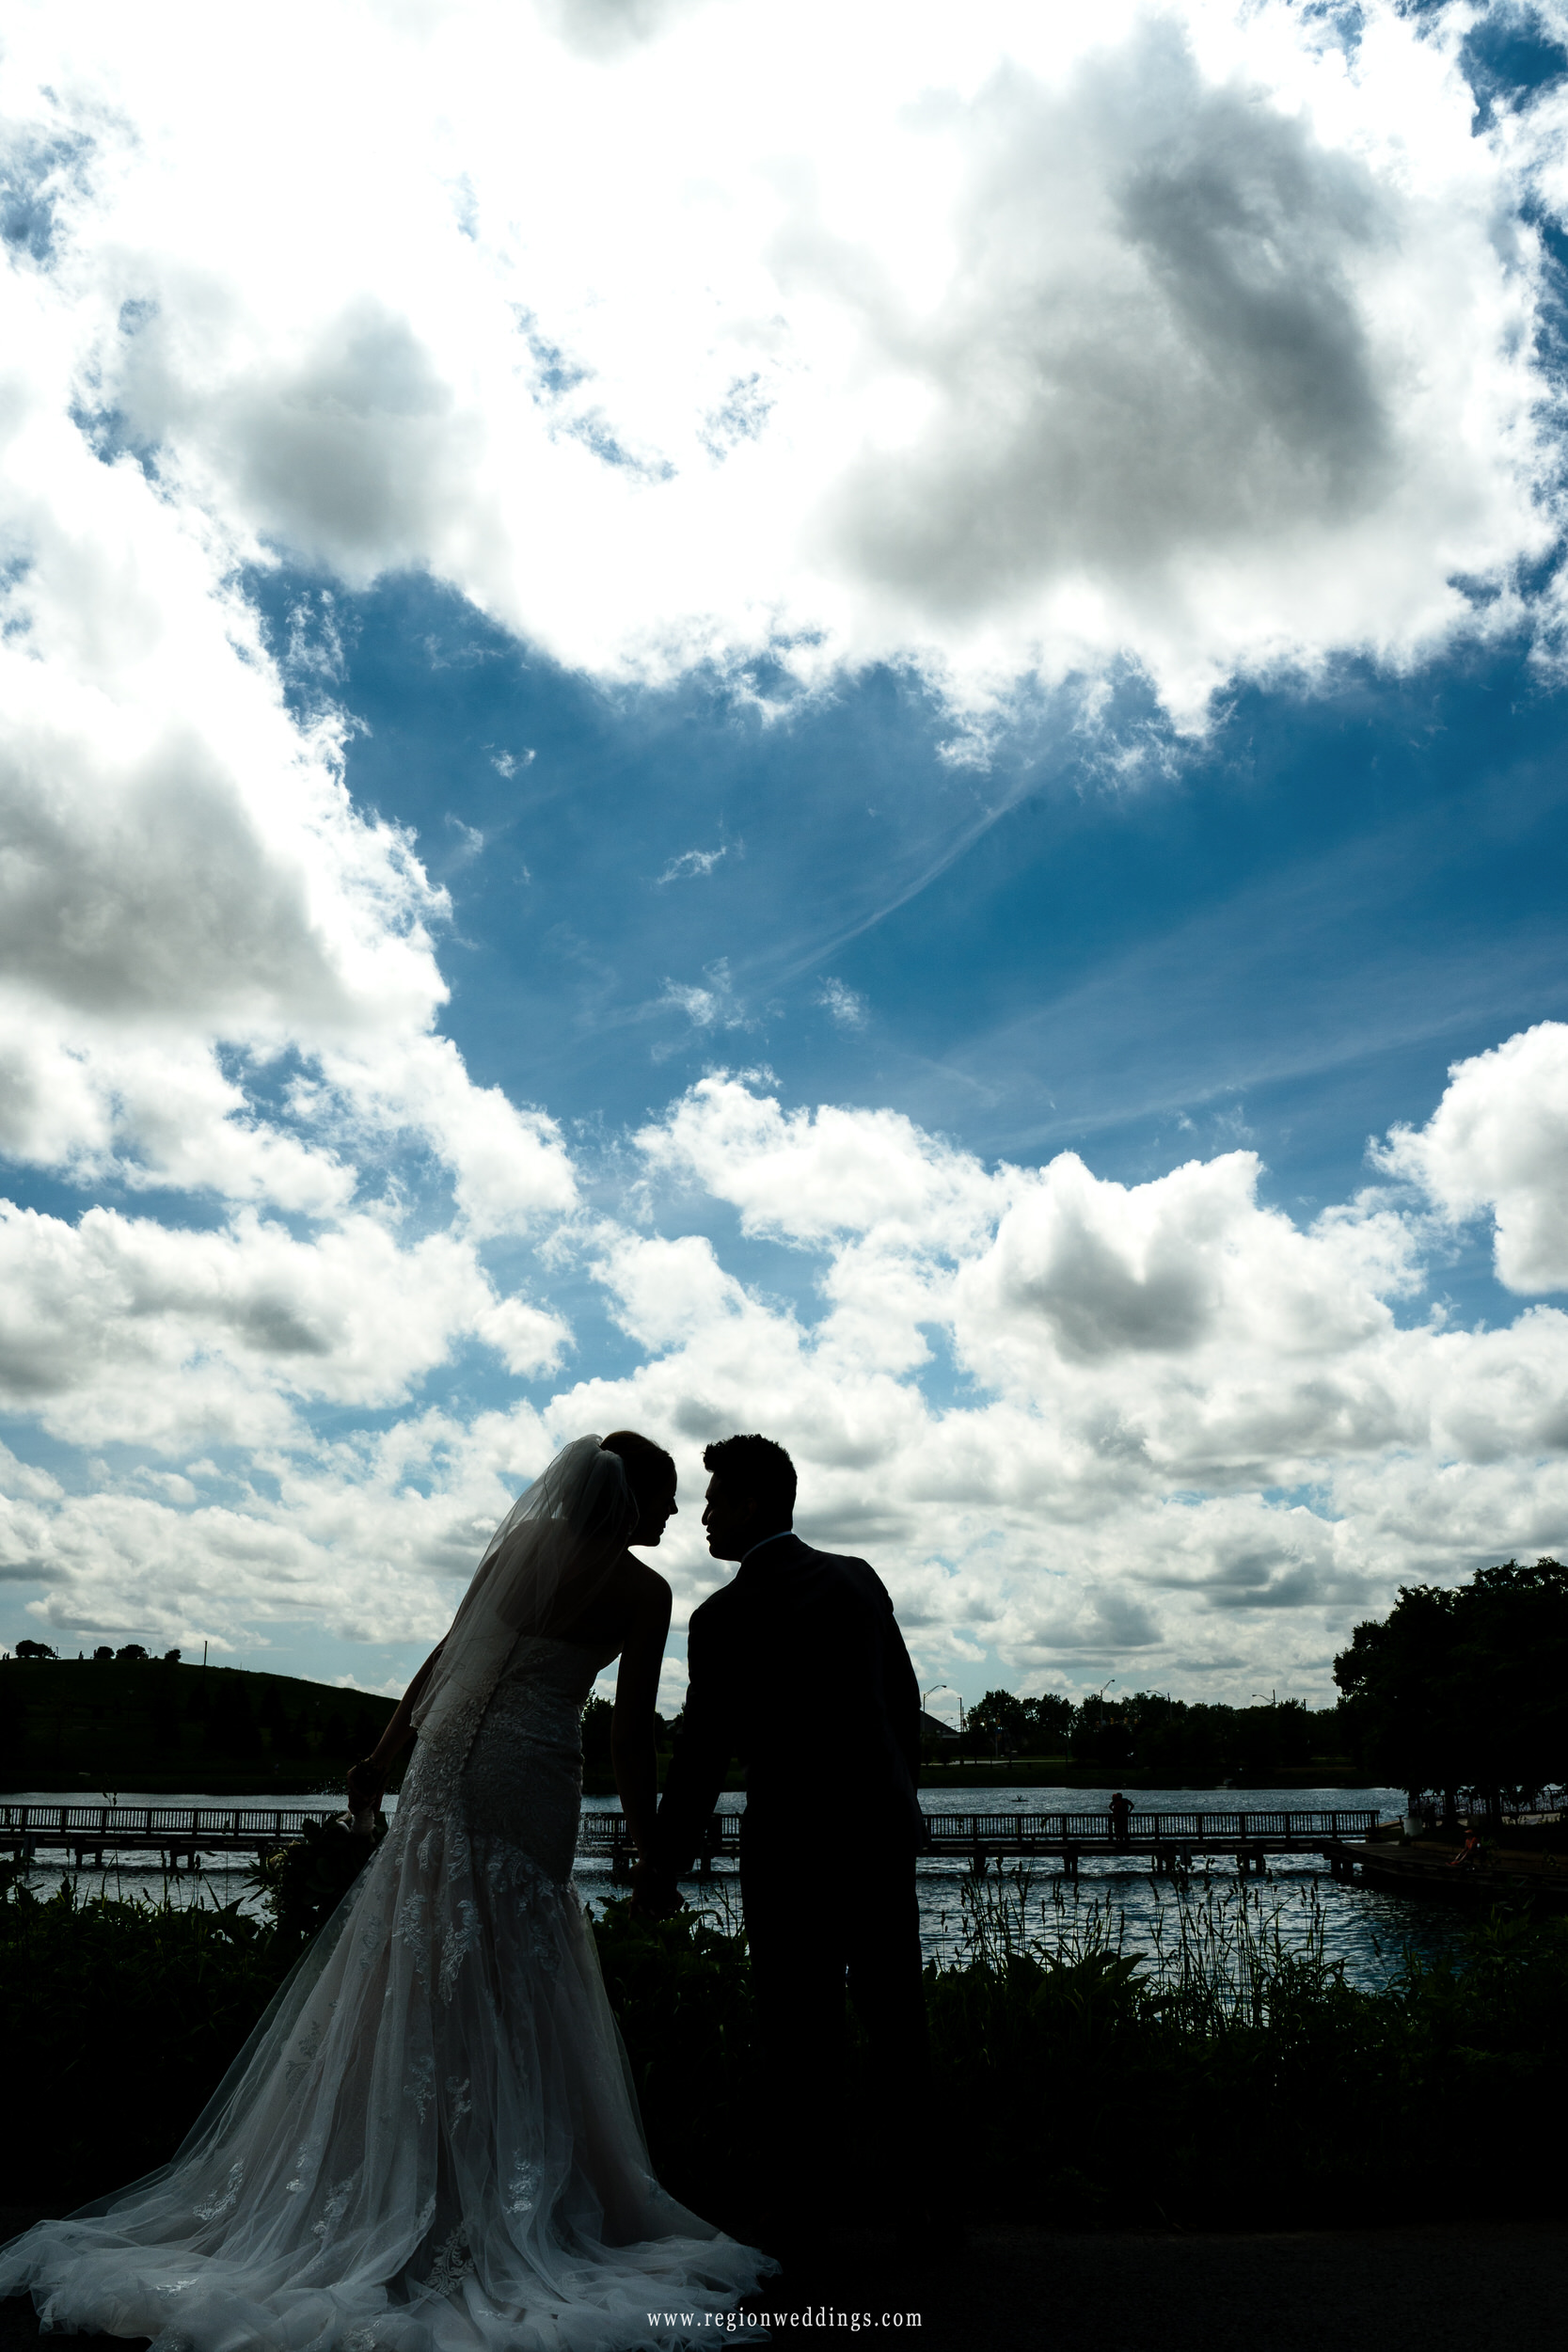 Blue sky silhouette of the bride and groom at Centennial Park in Munster, Indiana.